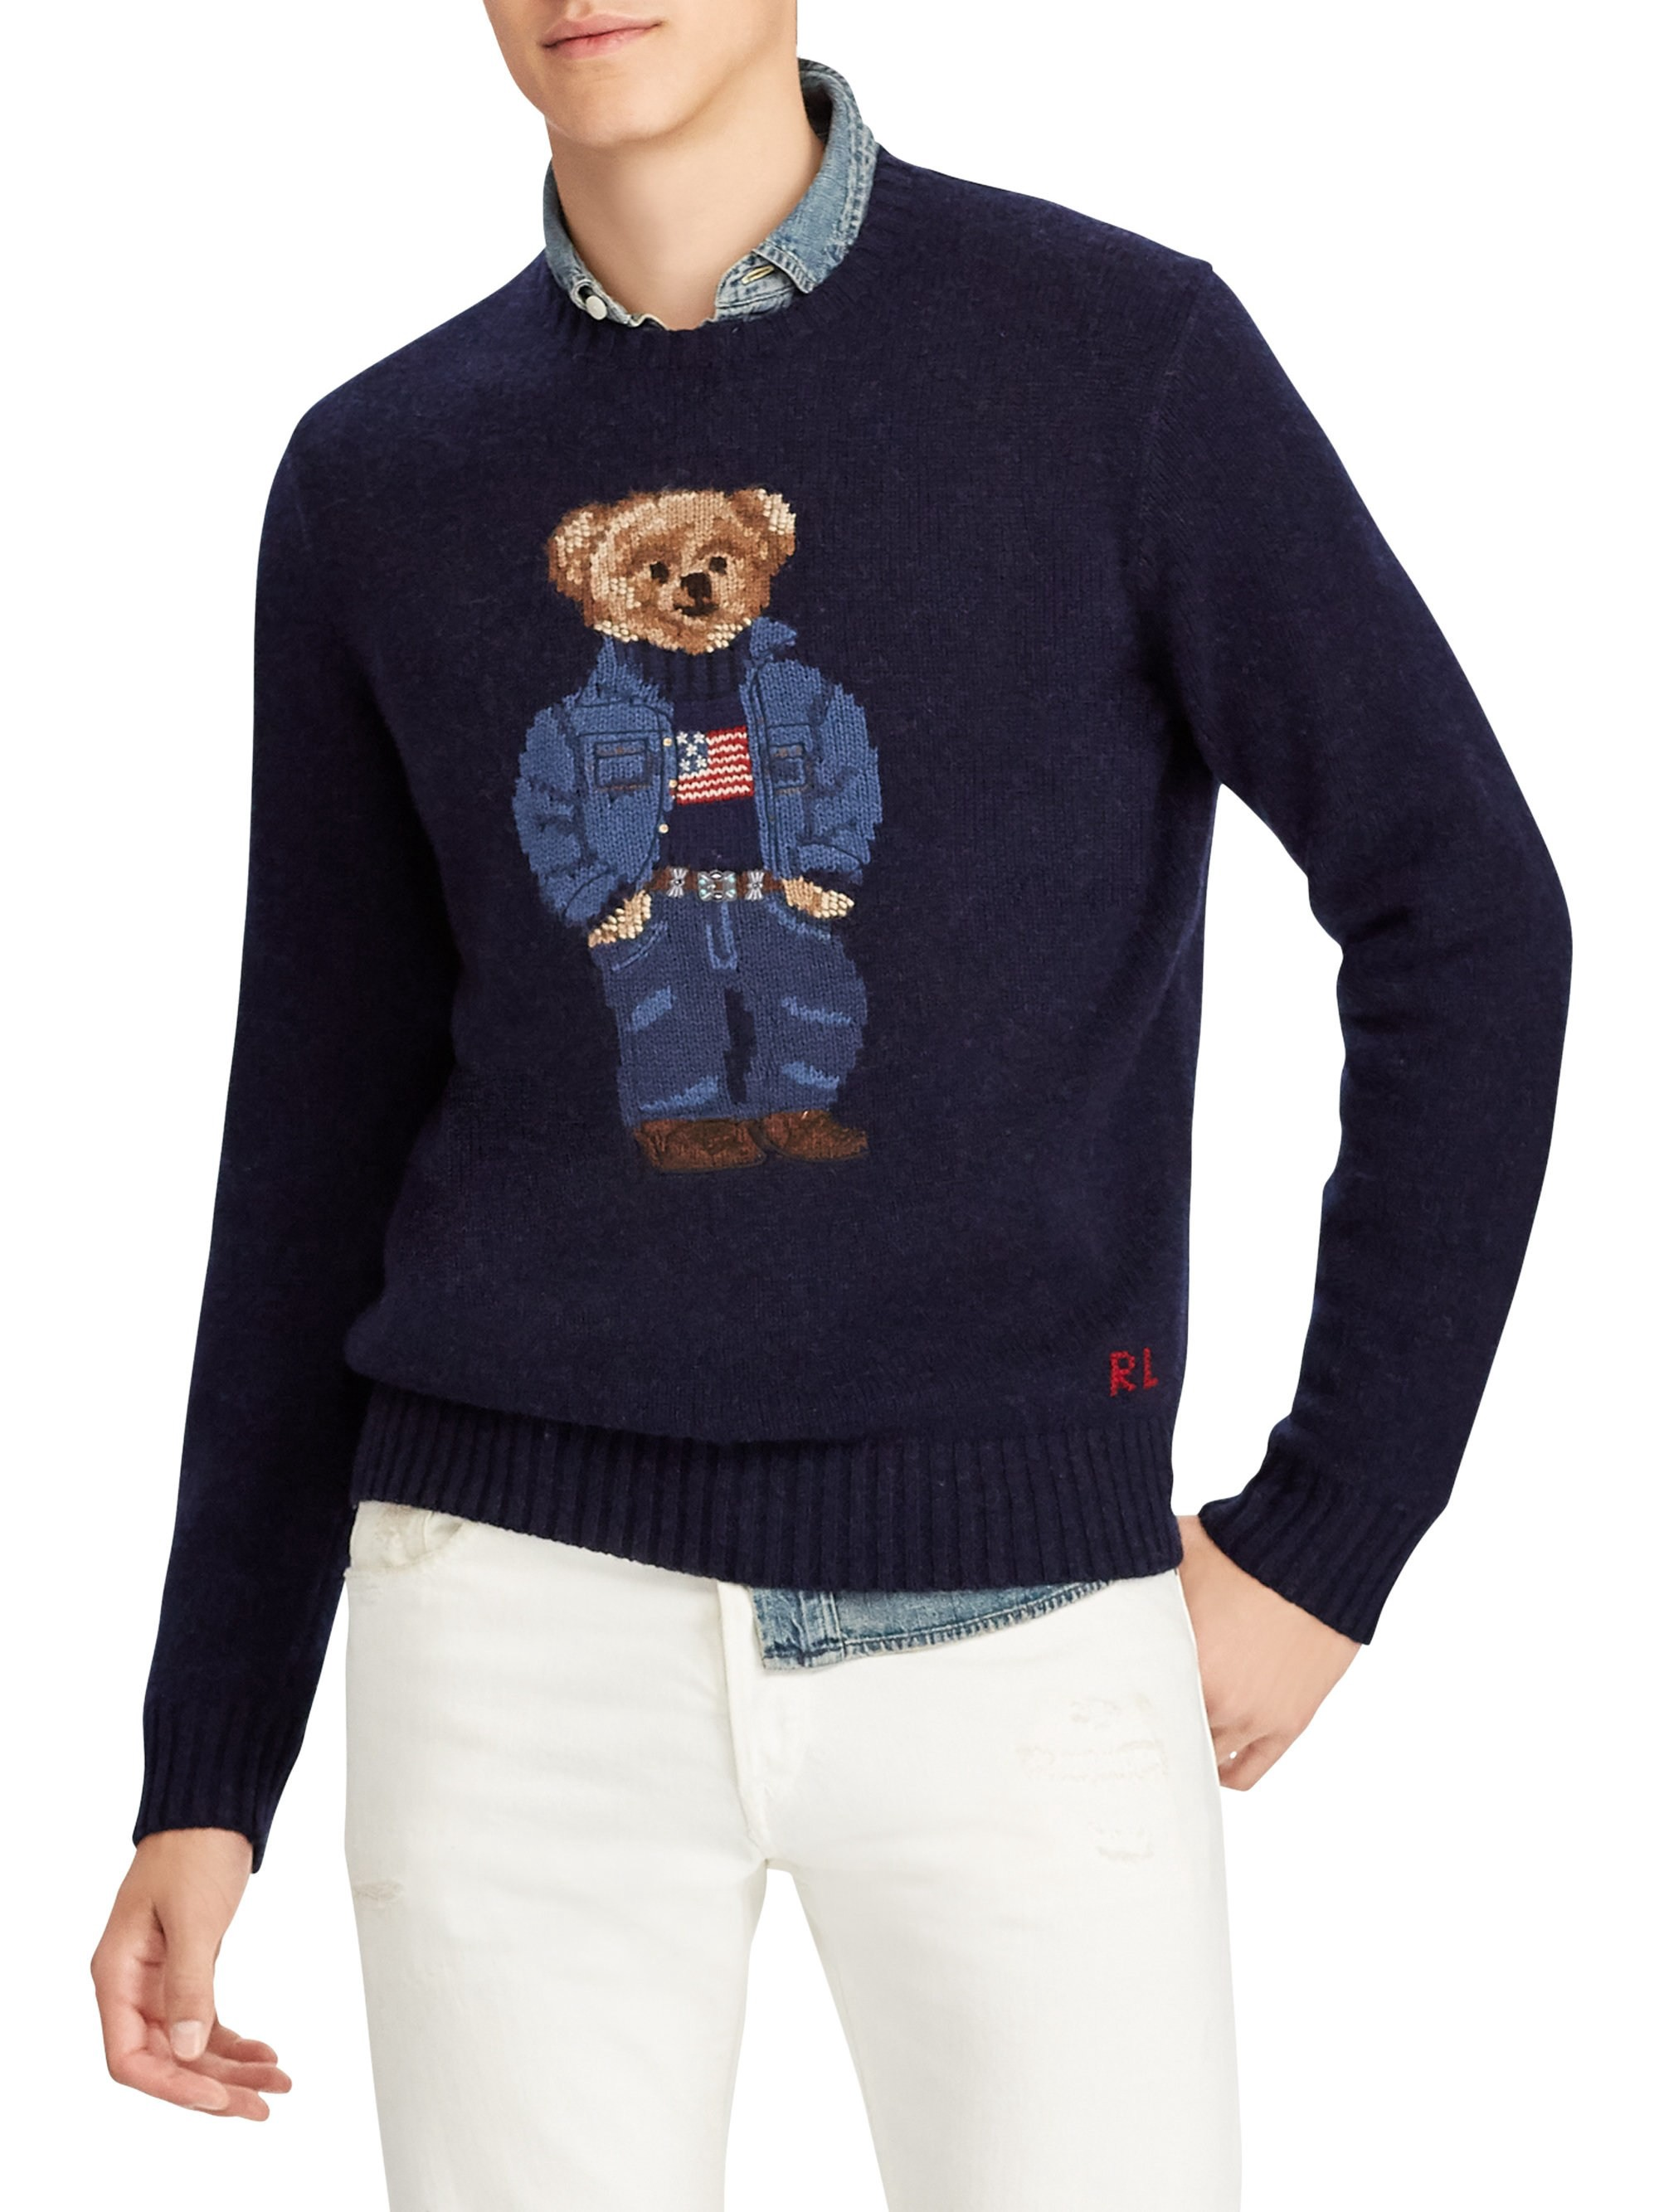 92abba38a6 Ralph Lauren Polo Bear Sweater - Navy X-Large | Products | Sweaters ...